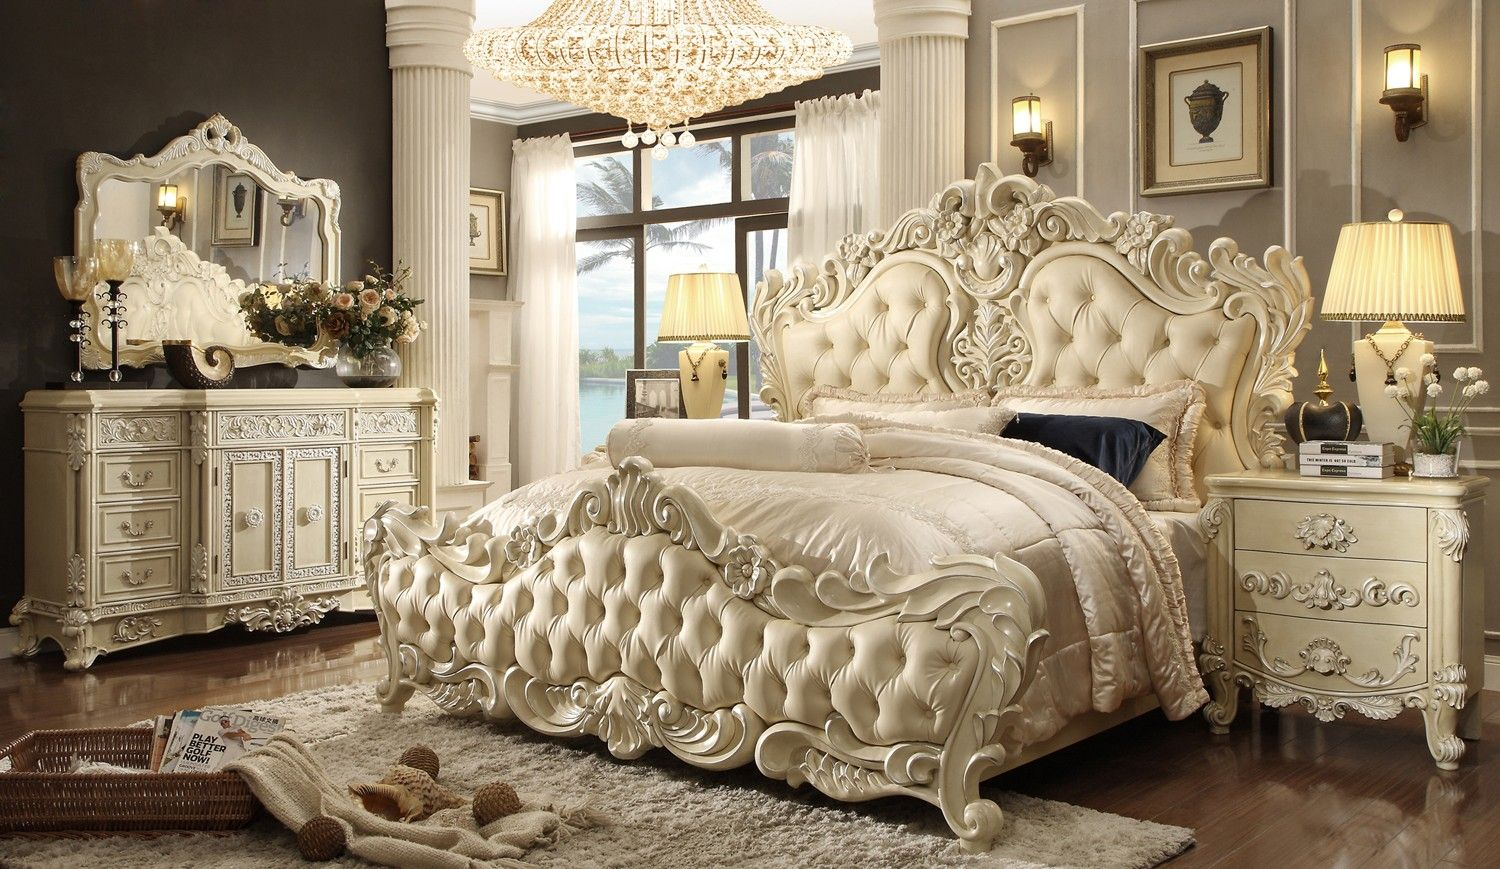 Charmant HOMEY DESIGN HD 5800TRADITIONAL VICTORIAN LUXURIOUS 5 PCS KING BEDROOM SET